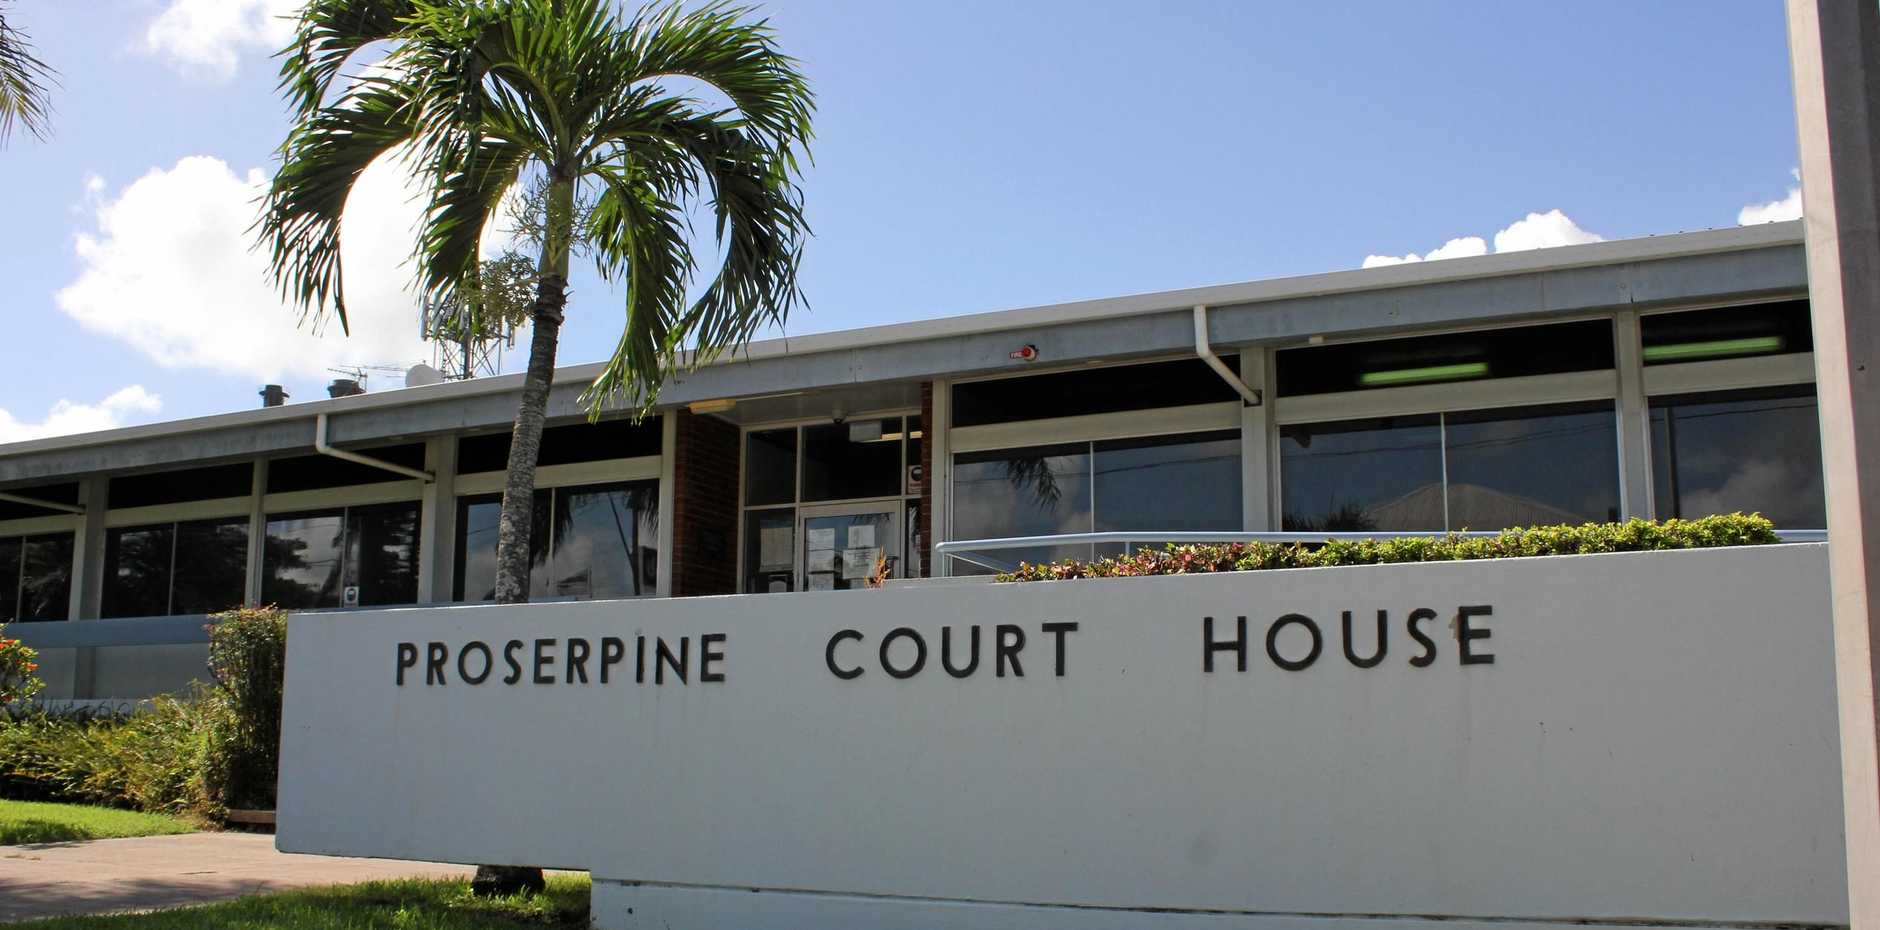 FINED: A 23-year-old man has been re-sentenced in Prosperine for stealing.